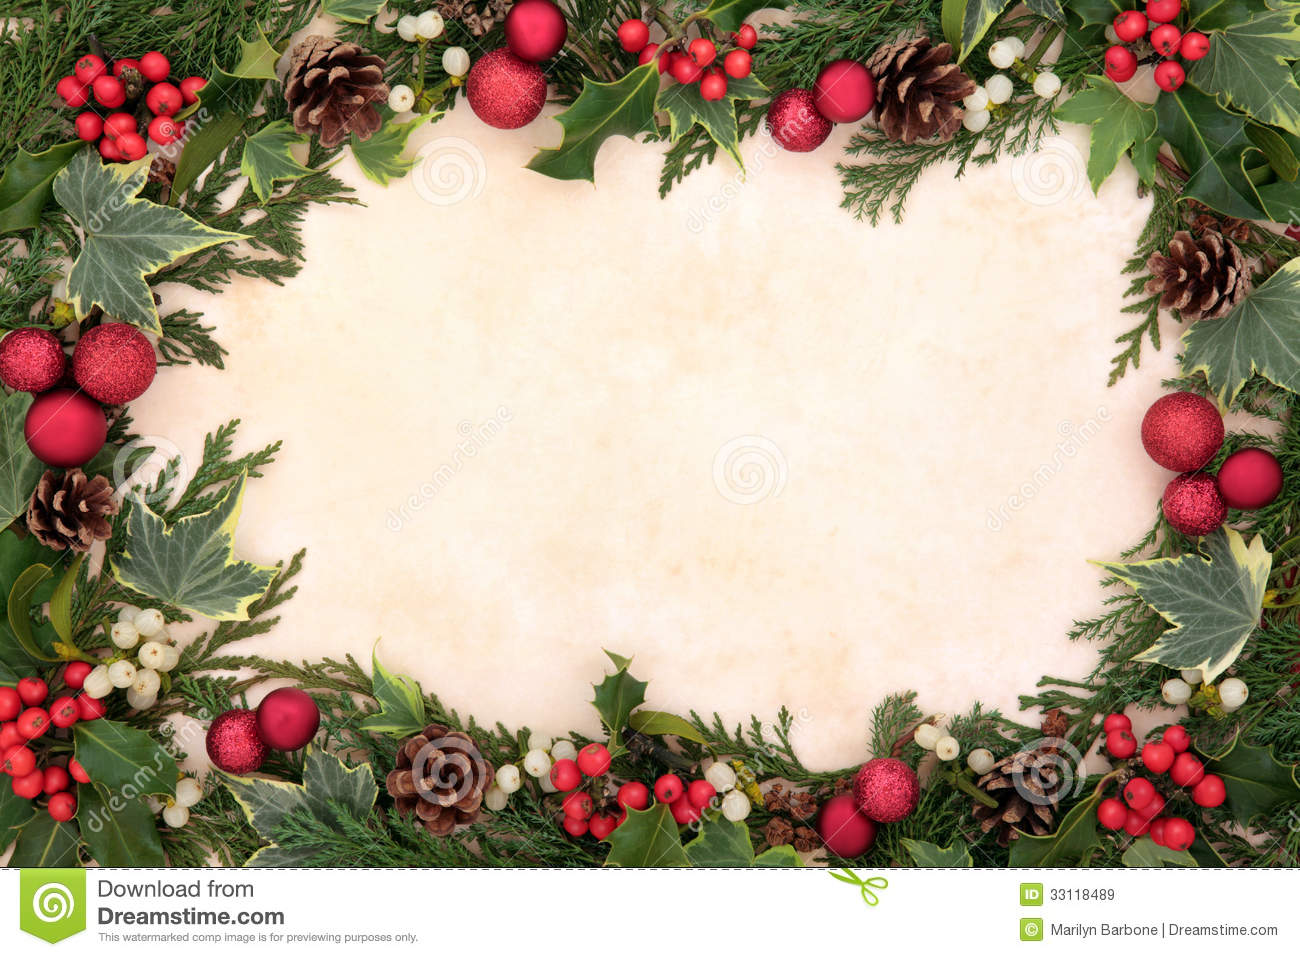 Christmas traditions in the united states clipart royalty free download Christmas in the united states clipart - ClipartFest royalty free download